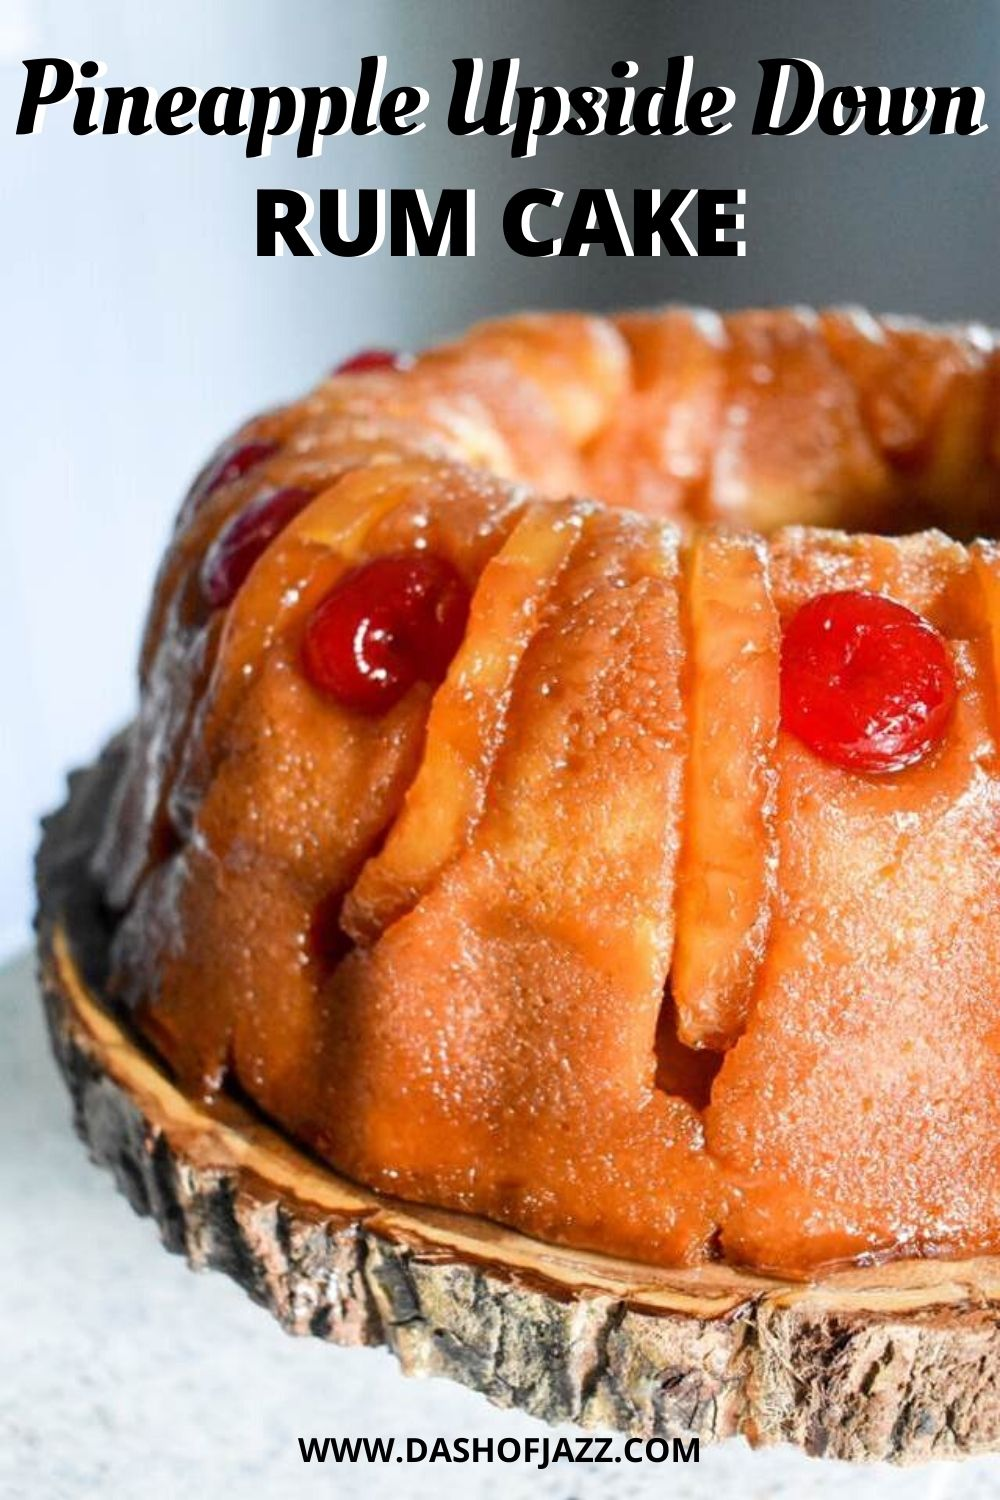 pineapple upside down rum cake with text overlay